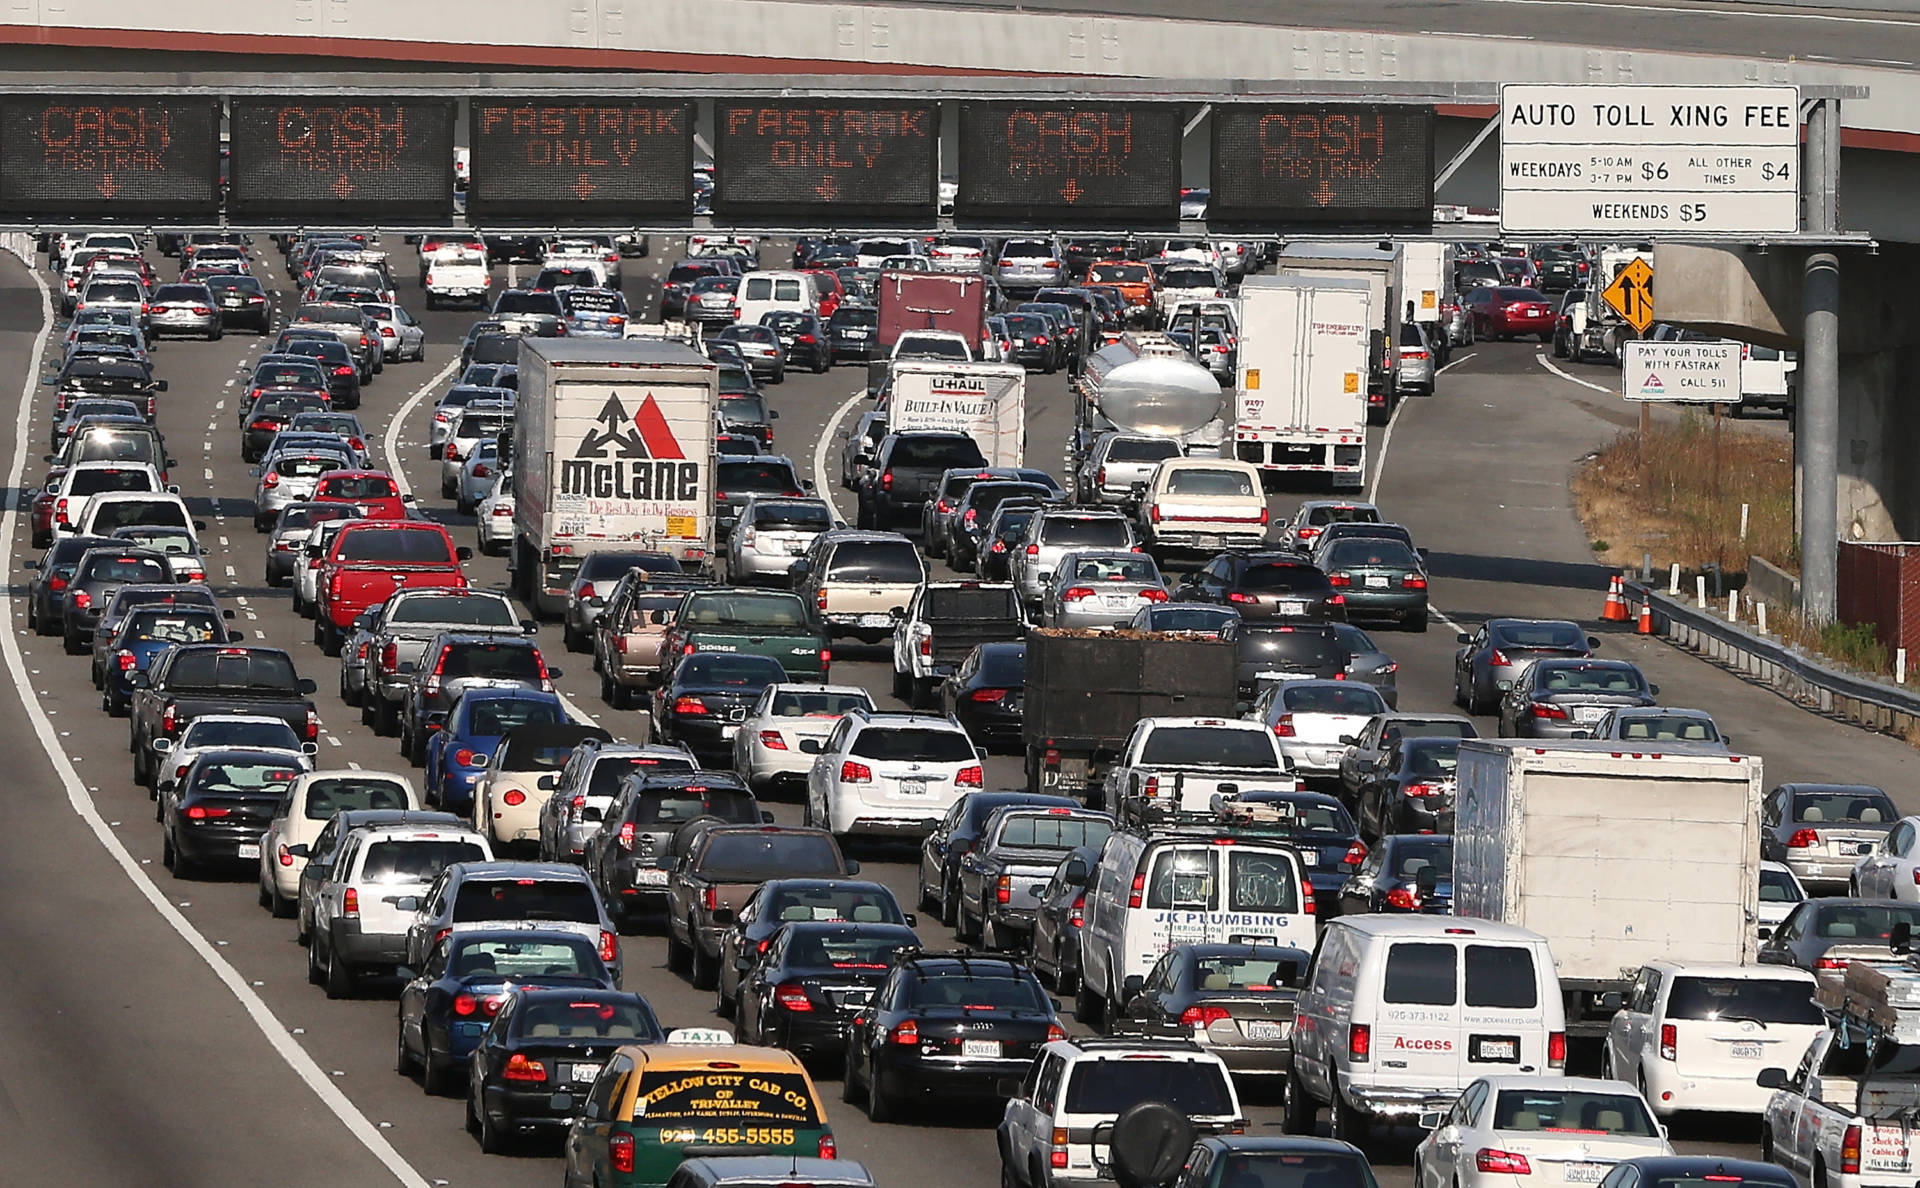 $4.4 Billion Bay Area Transportation Plan — to Be Paid for ...